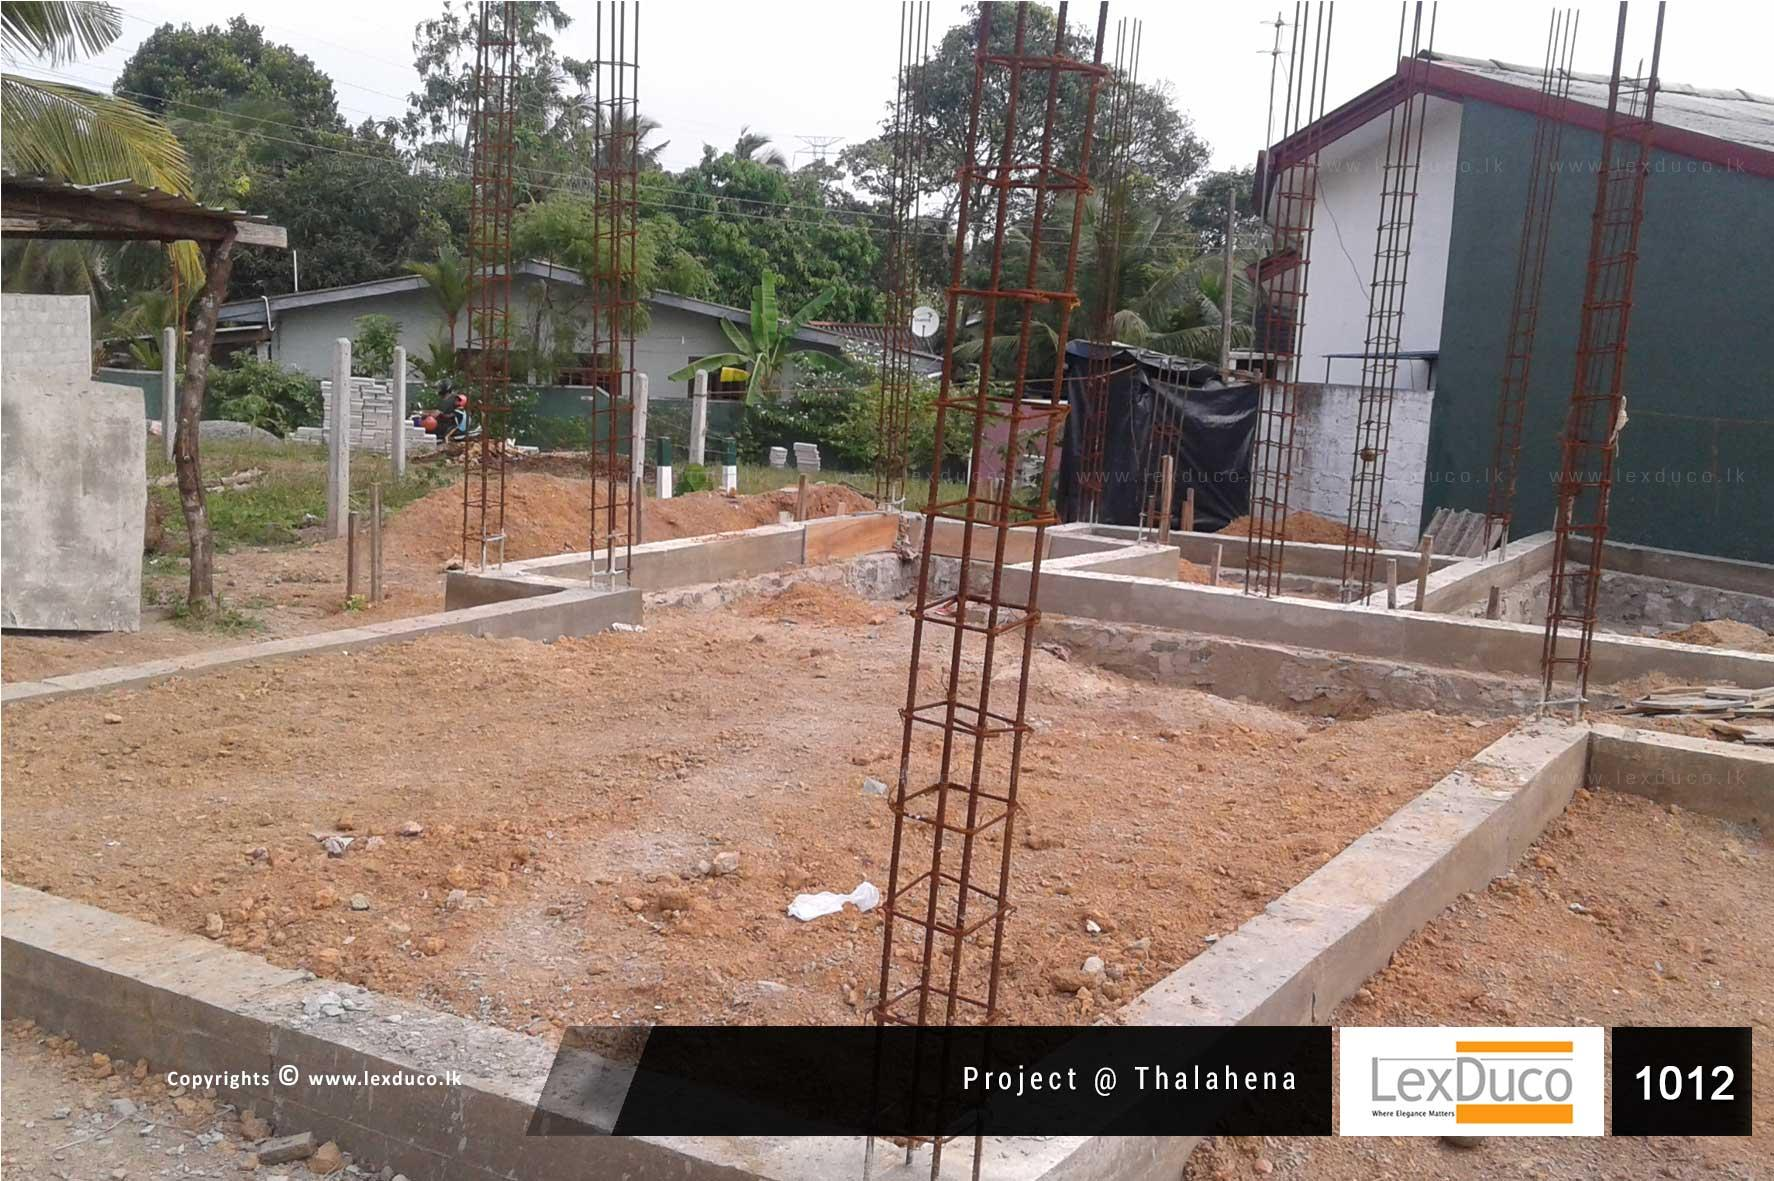 Residential Housing Project at Thalahena | Lex Duco